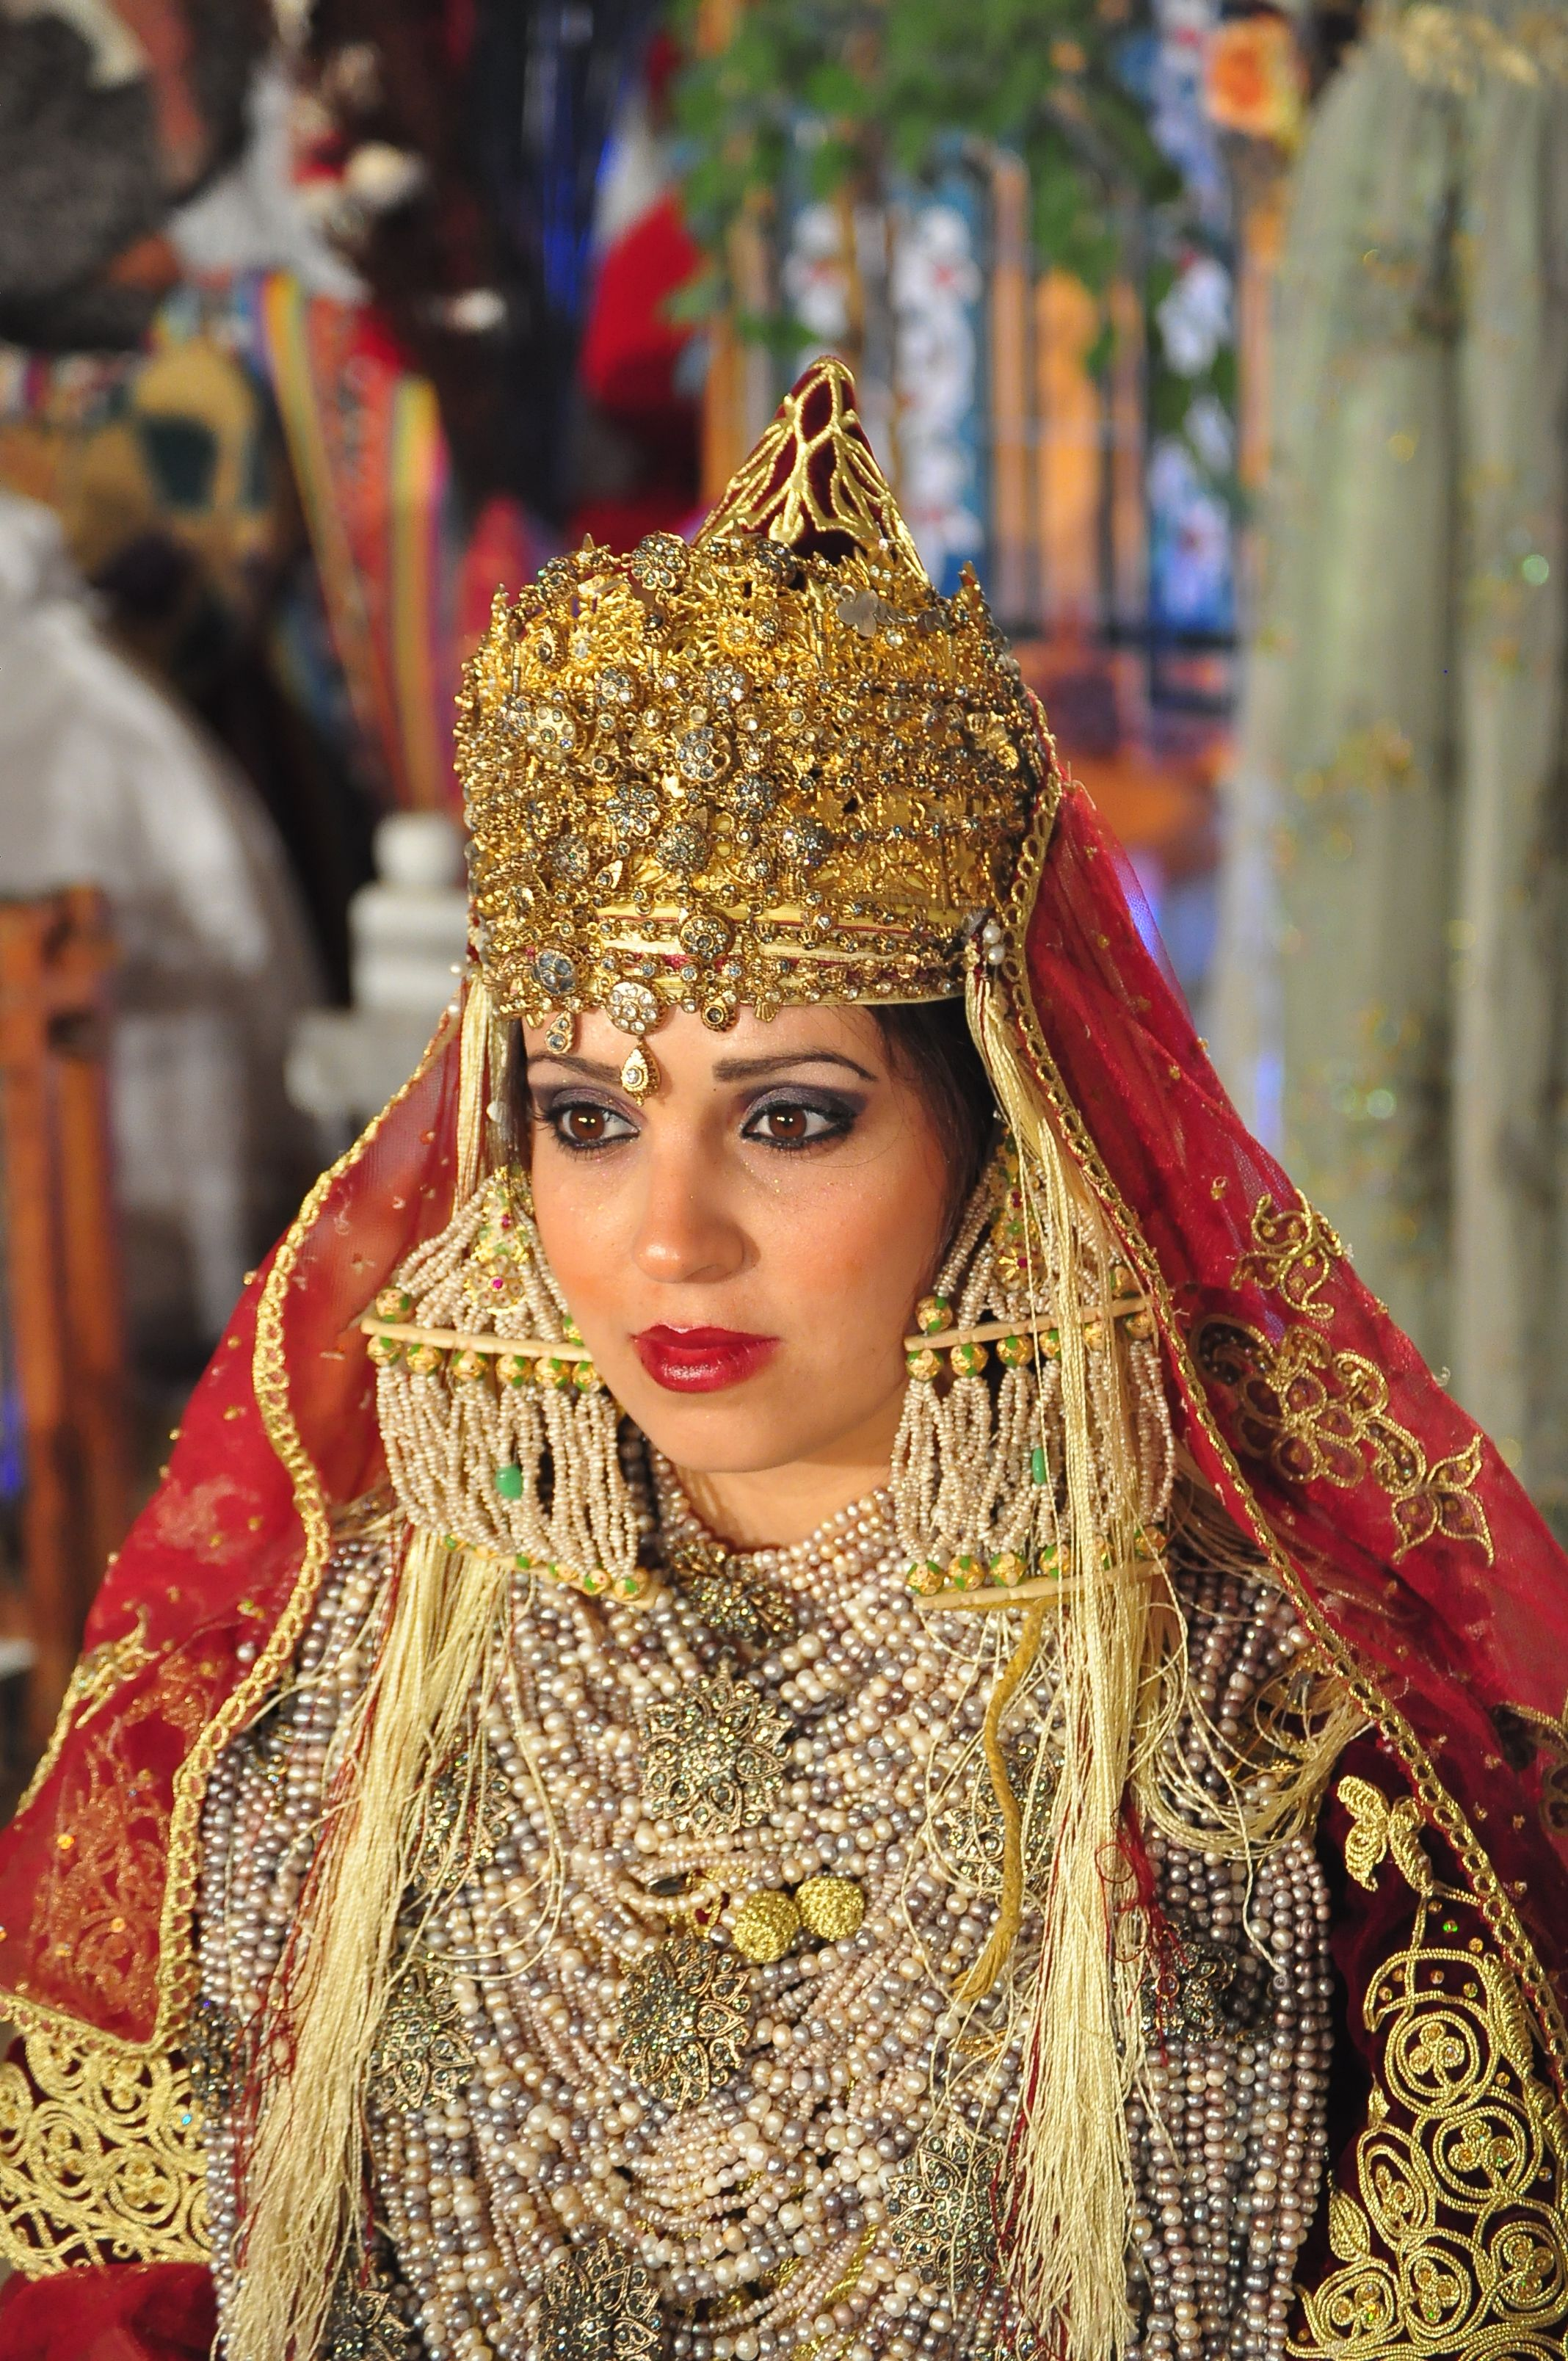 a76d052c5 The traditional costume of Tlemcen is an Algerian dress composed of several  layers of clothes and accessories linked to different Mediterranean ...